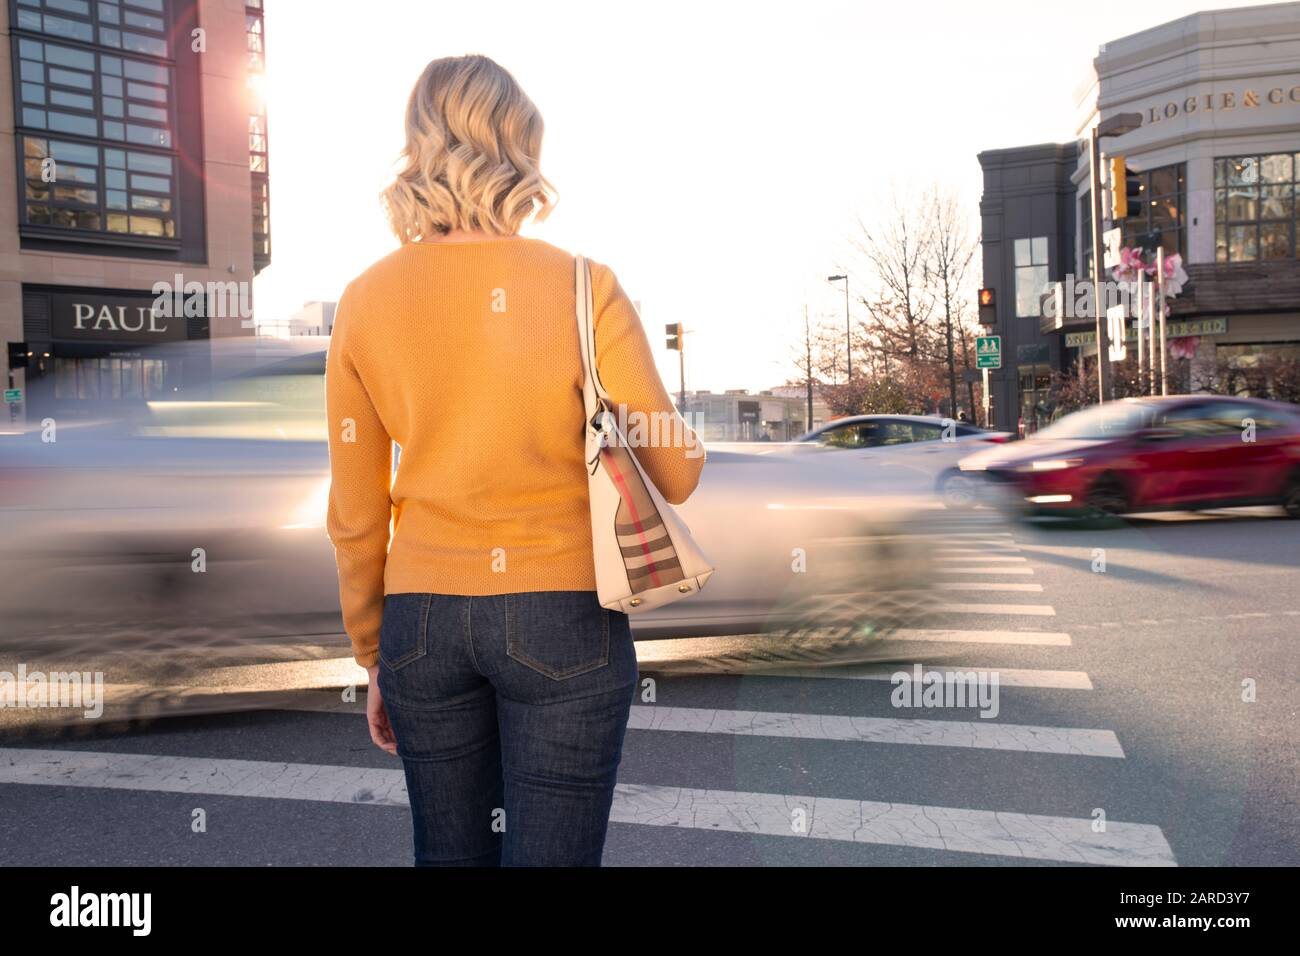 usa-maryland-bethesda-pedestrian-safety-woman-crossing-in-a-crosswalk-with-car-traffic-2ARD3Y7.jpg